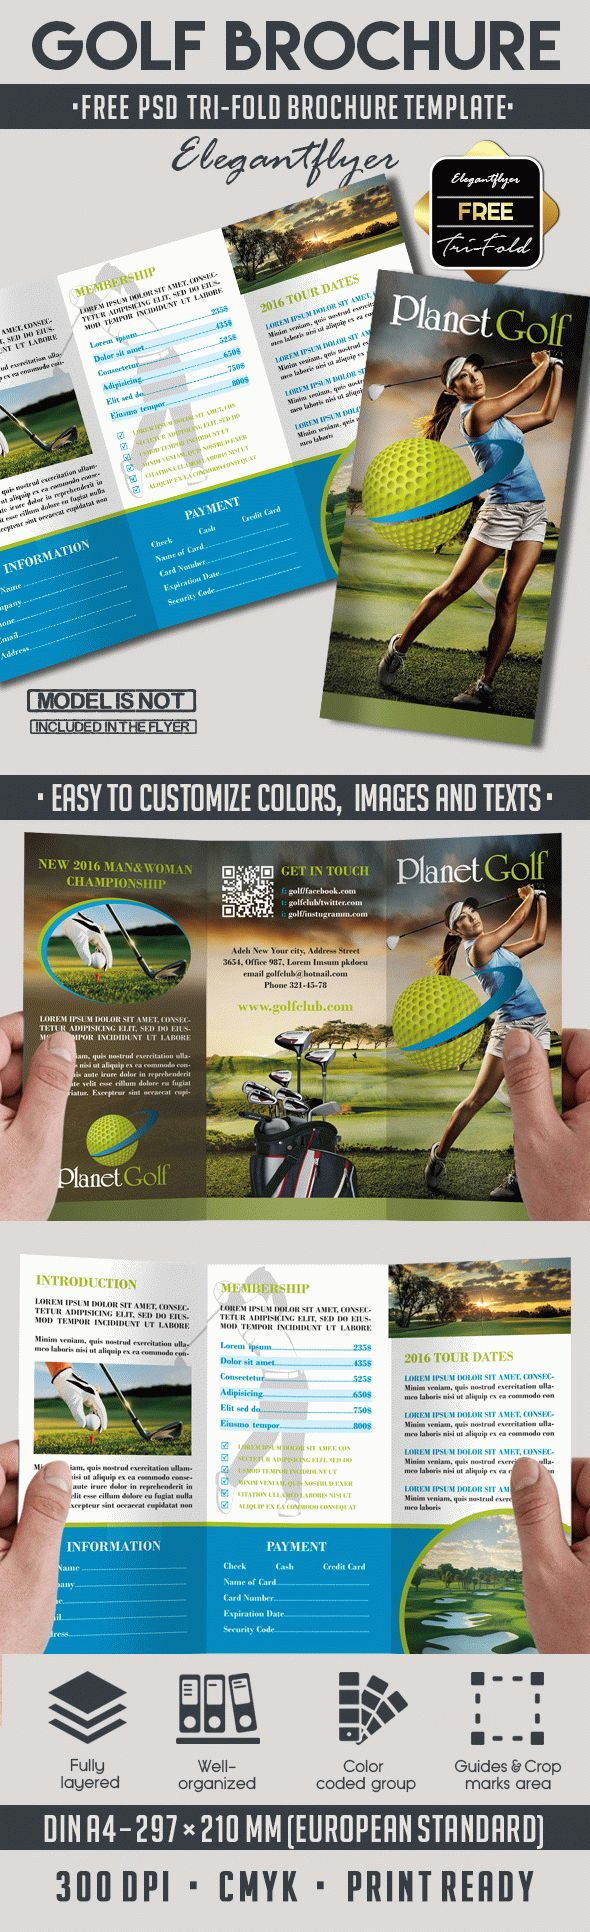 Golf club free psd tri fold psd brochure template by for Free psd brochure template